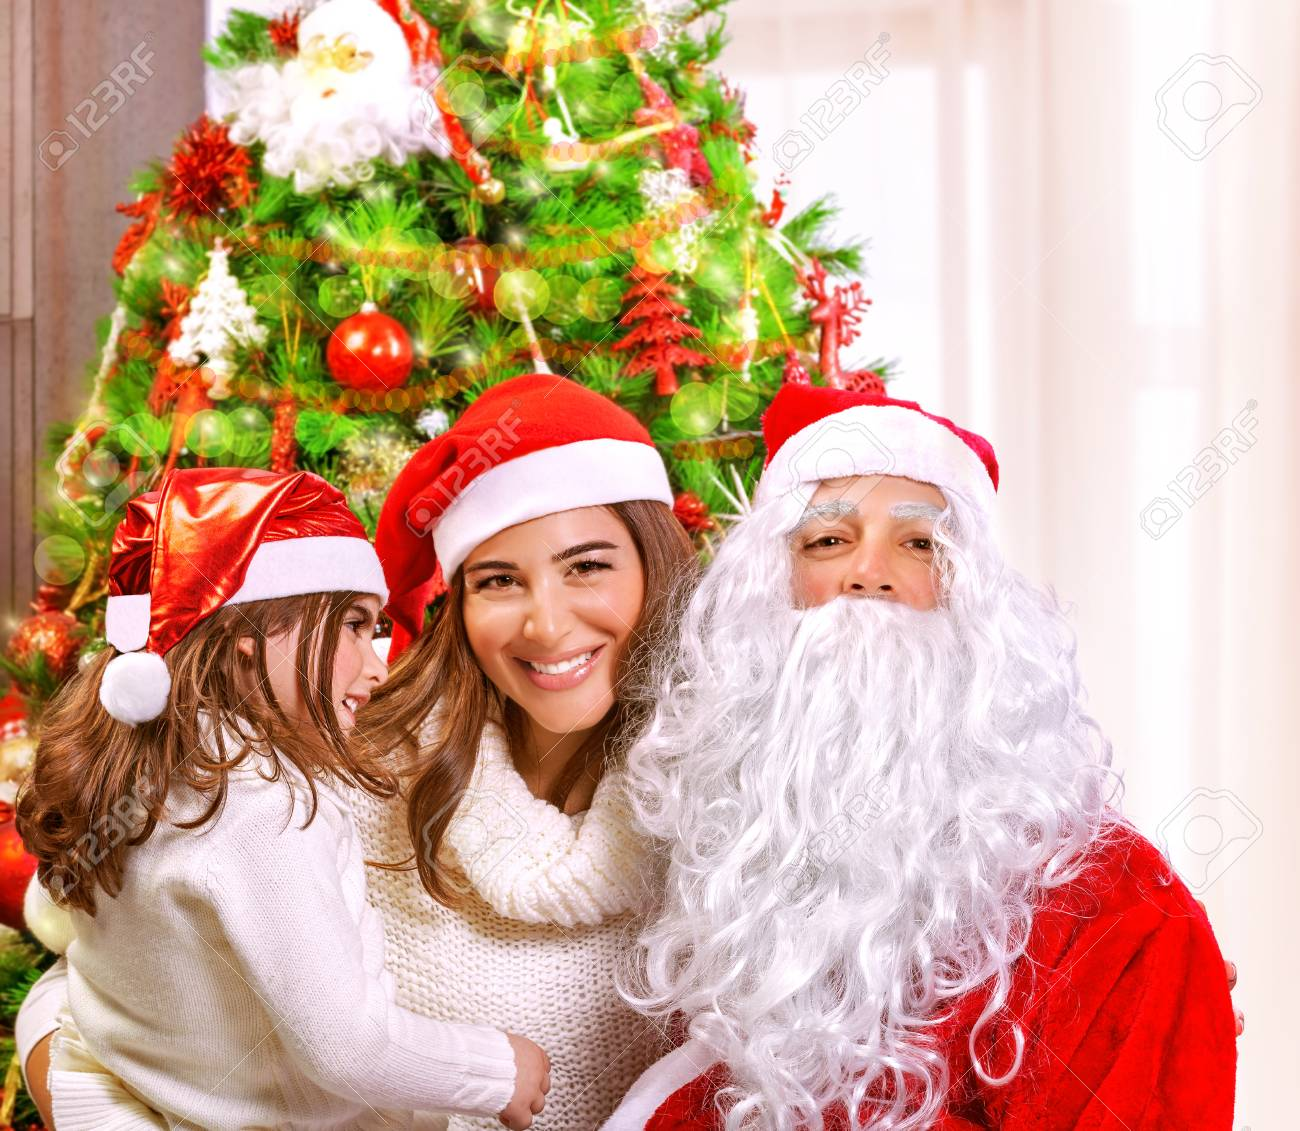 Christmas party, happy family at home celebrating New Year, mother with daughter and Santa claus near Xmas tree, happiness concept Stock Photo - 24262552